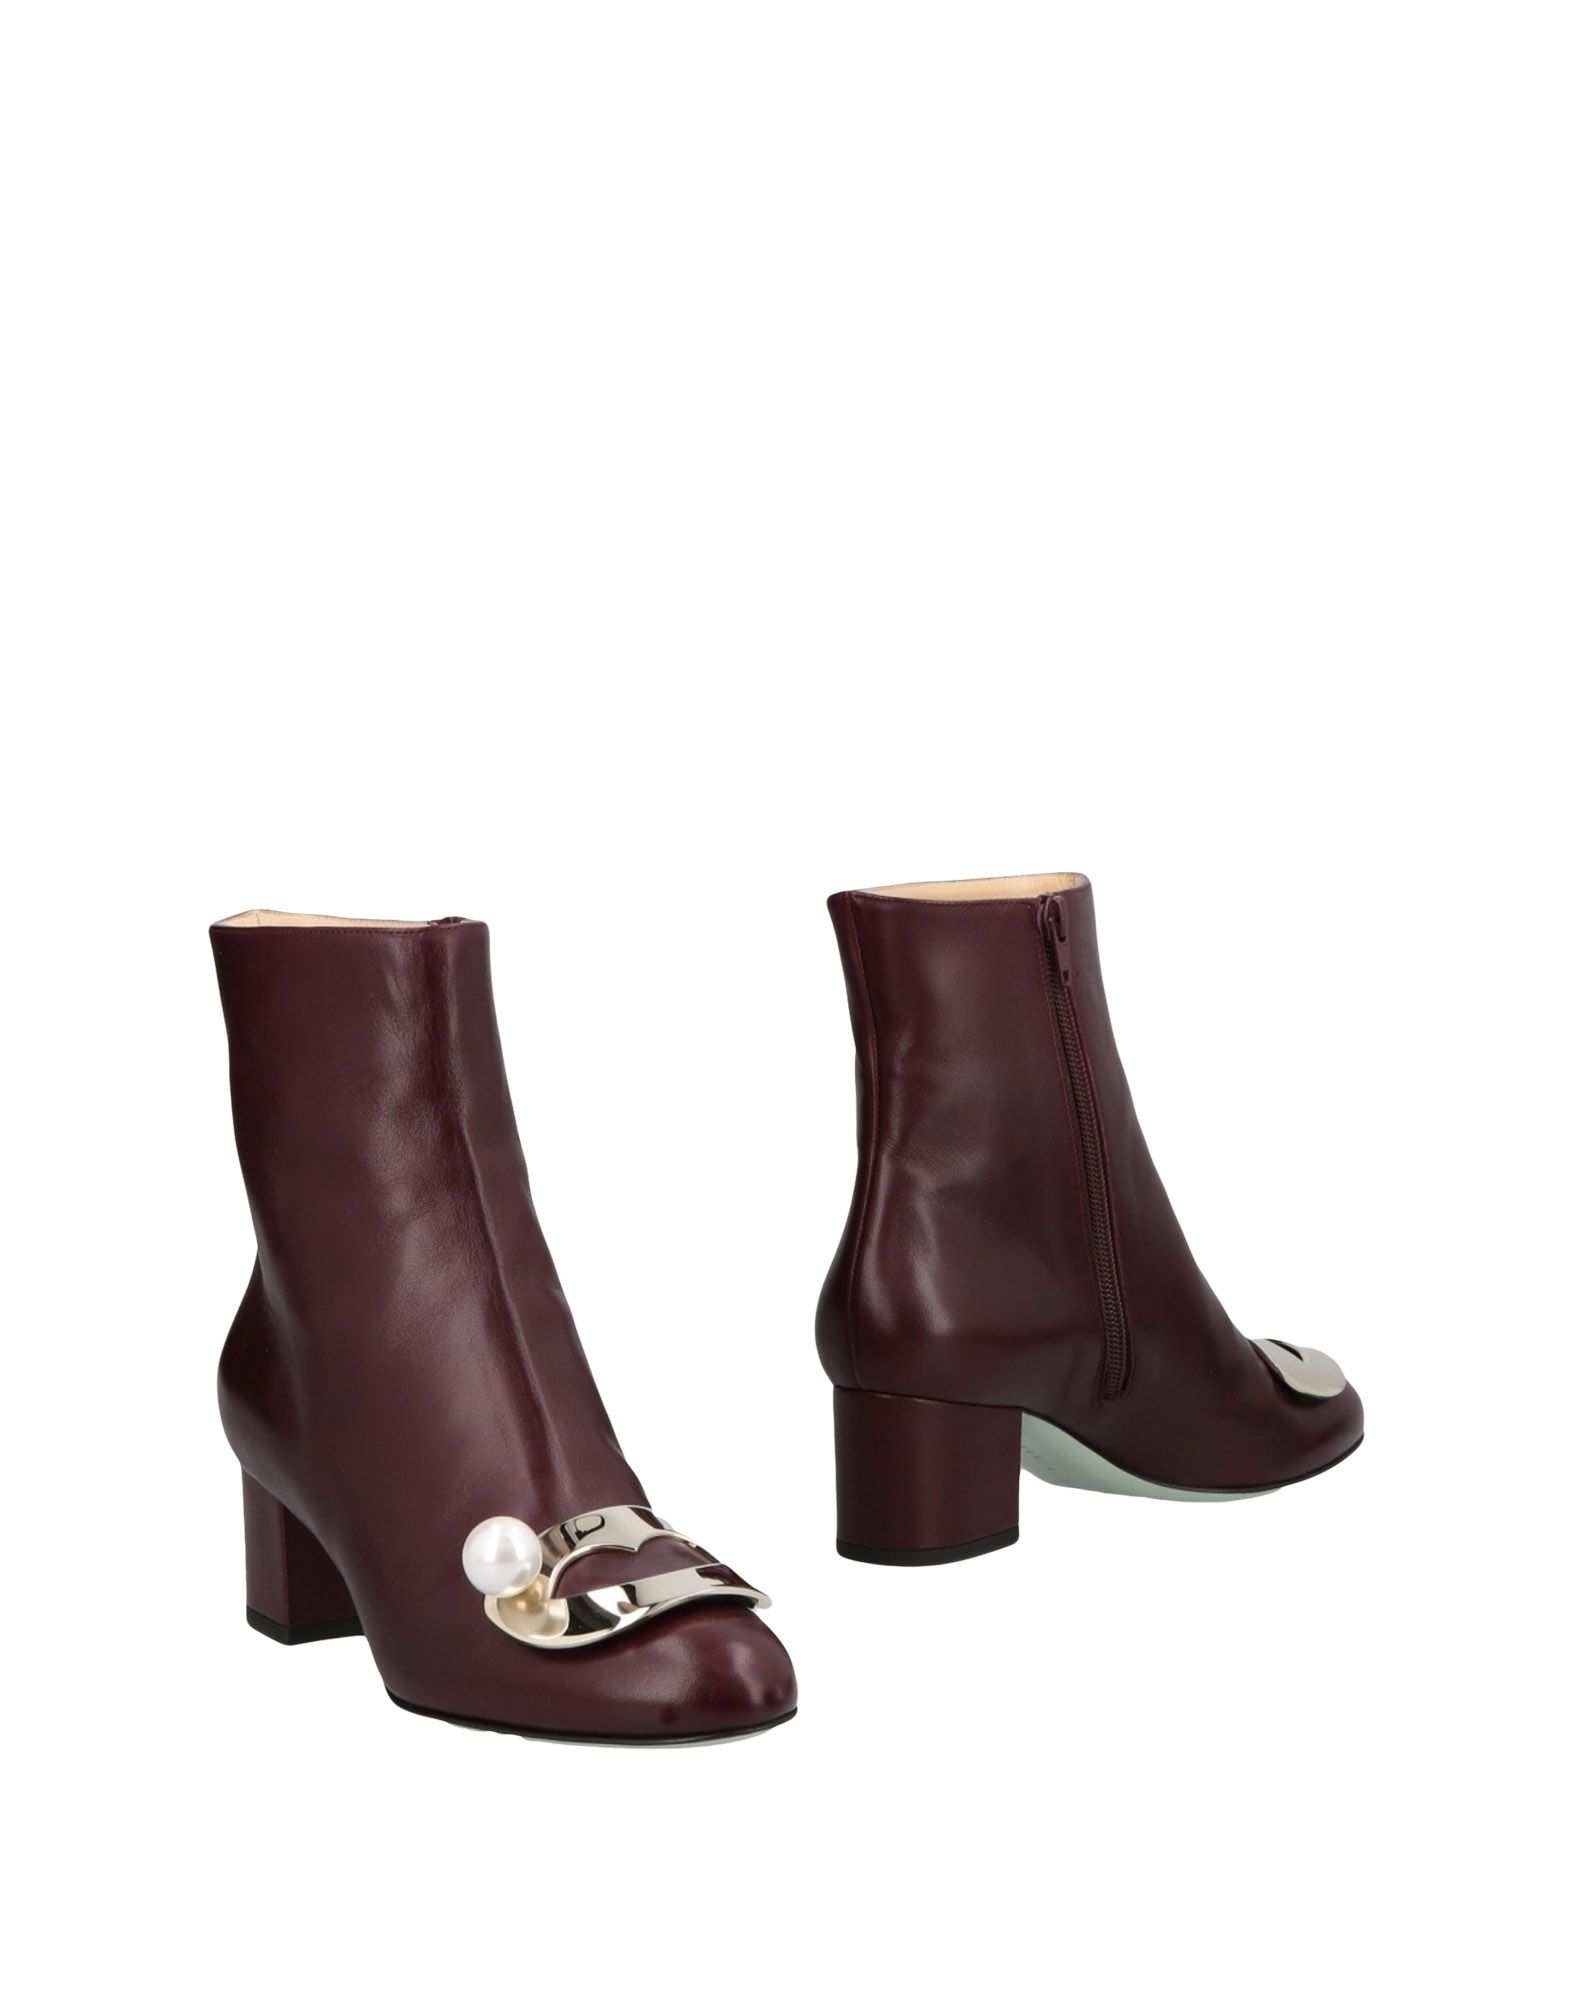 Giannico Ankle Boot Boots - Women Giannico Ankle Boots Boot online on  Australia - 11452573RQ ec6ec1